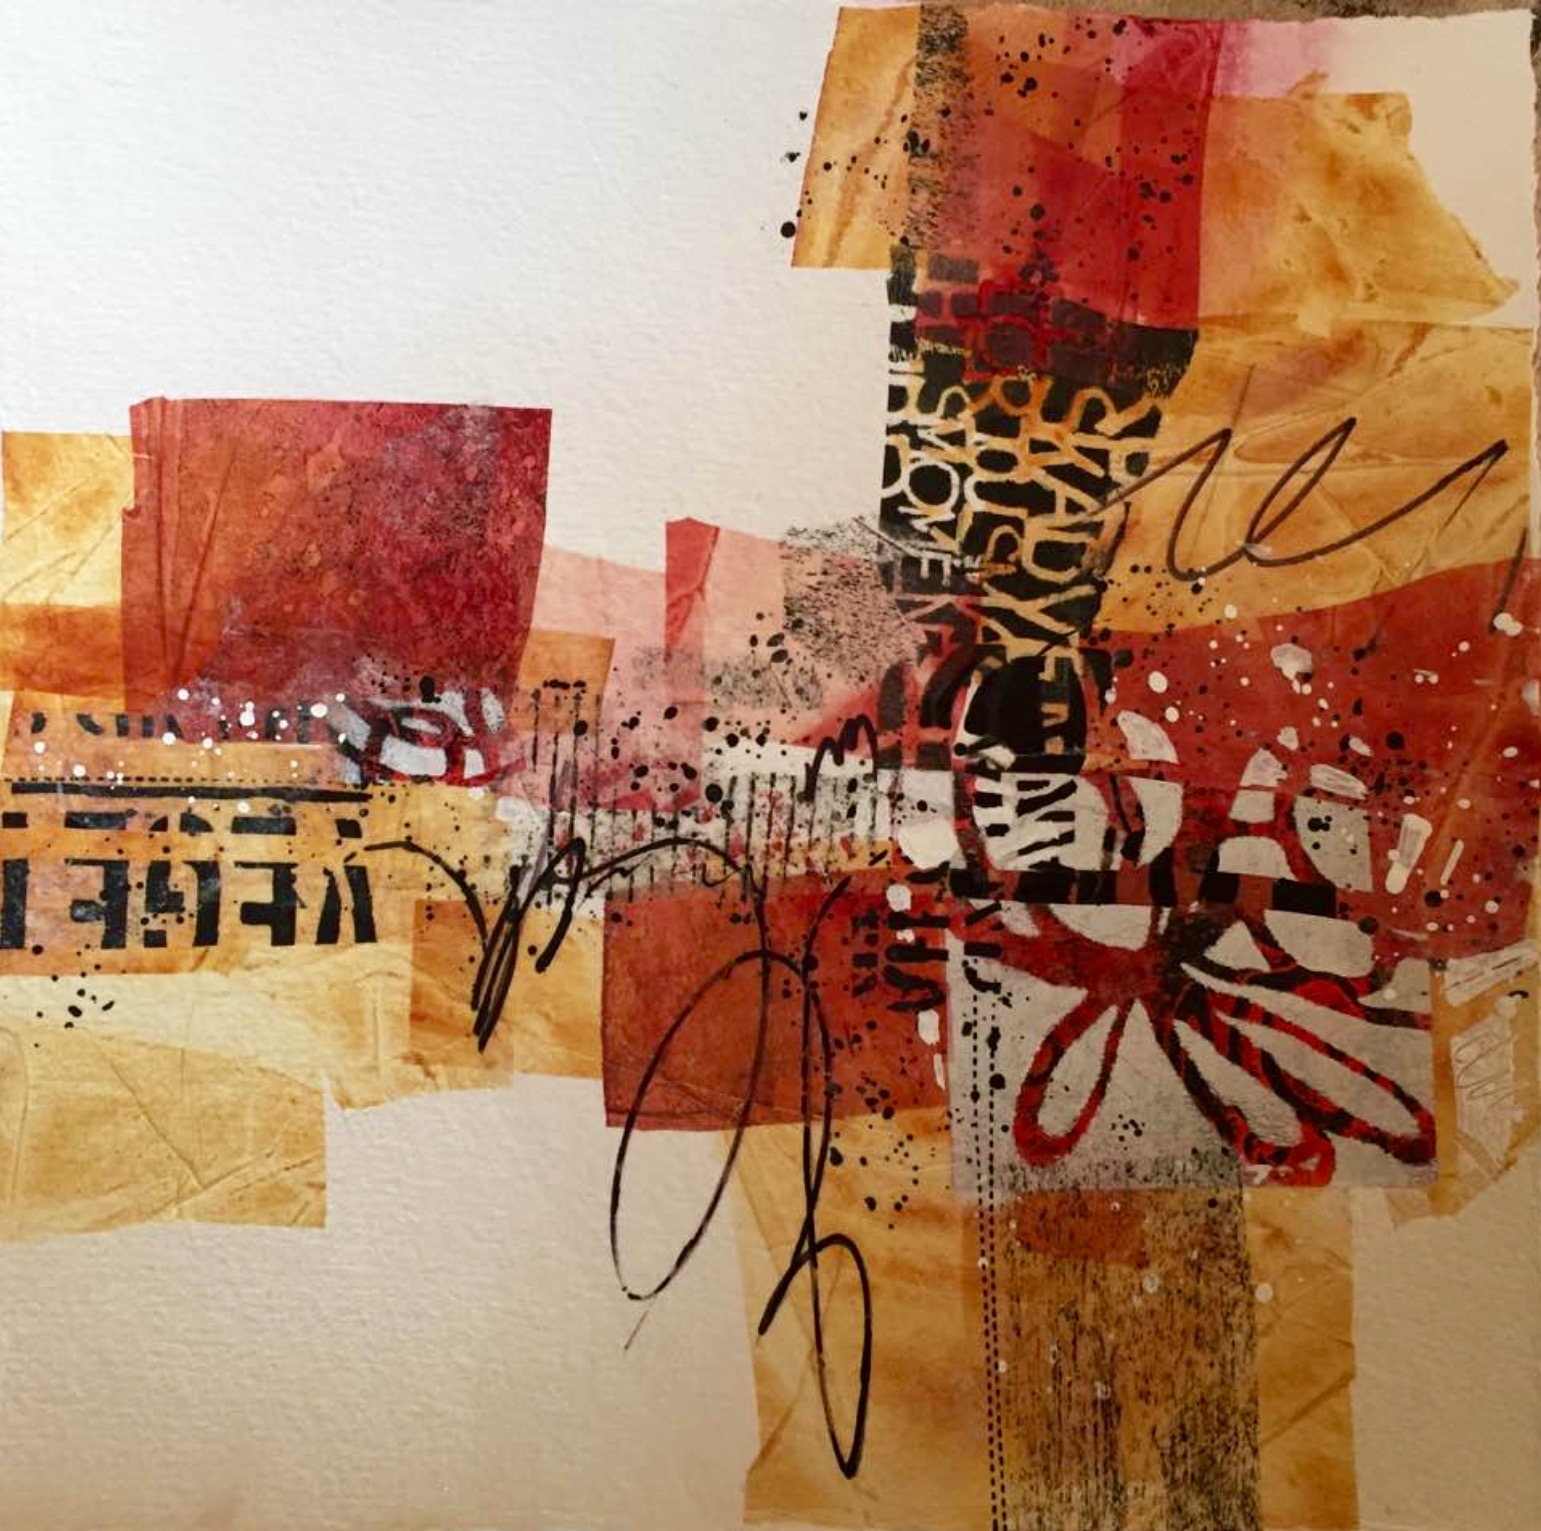 Design study using original collage papers. If interested, contact artist. by Jennifer Stone at Jennifer Stone Artwork